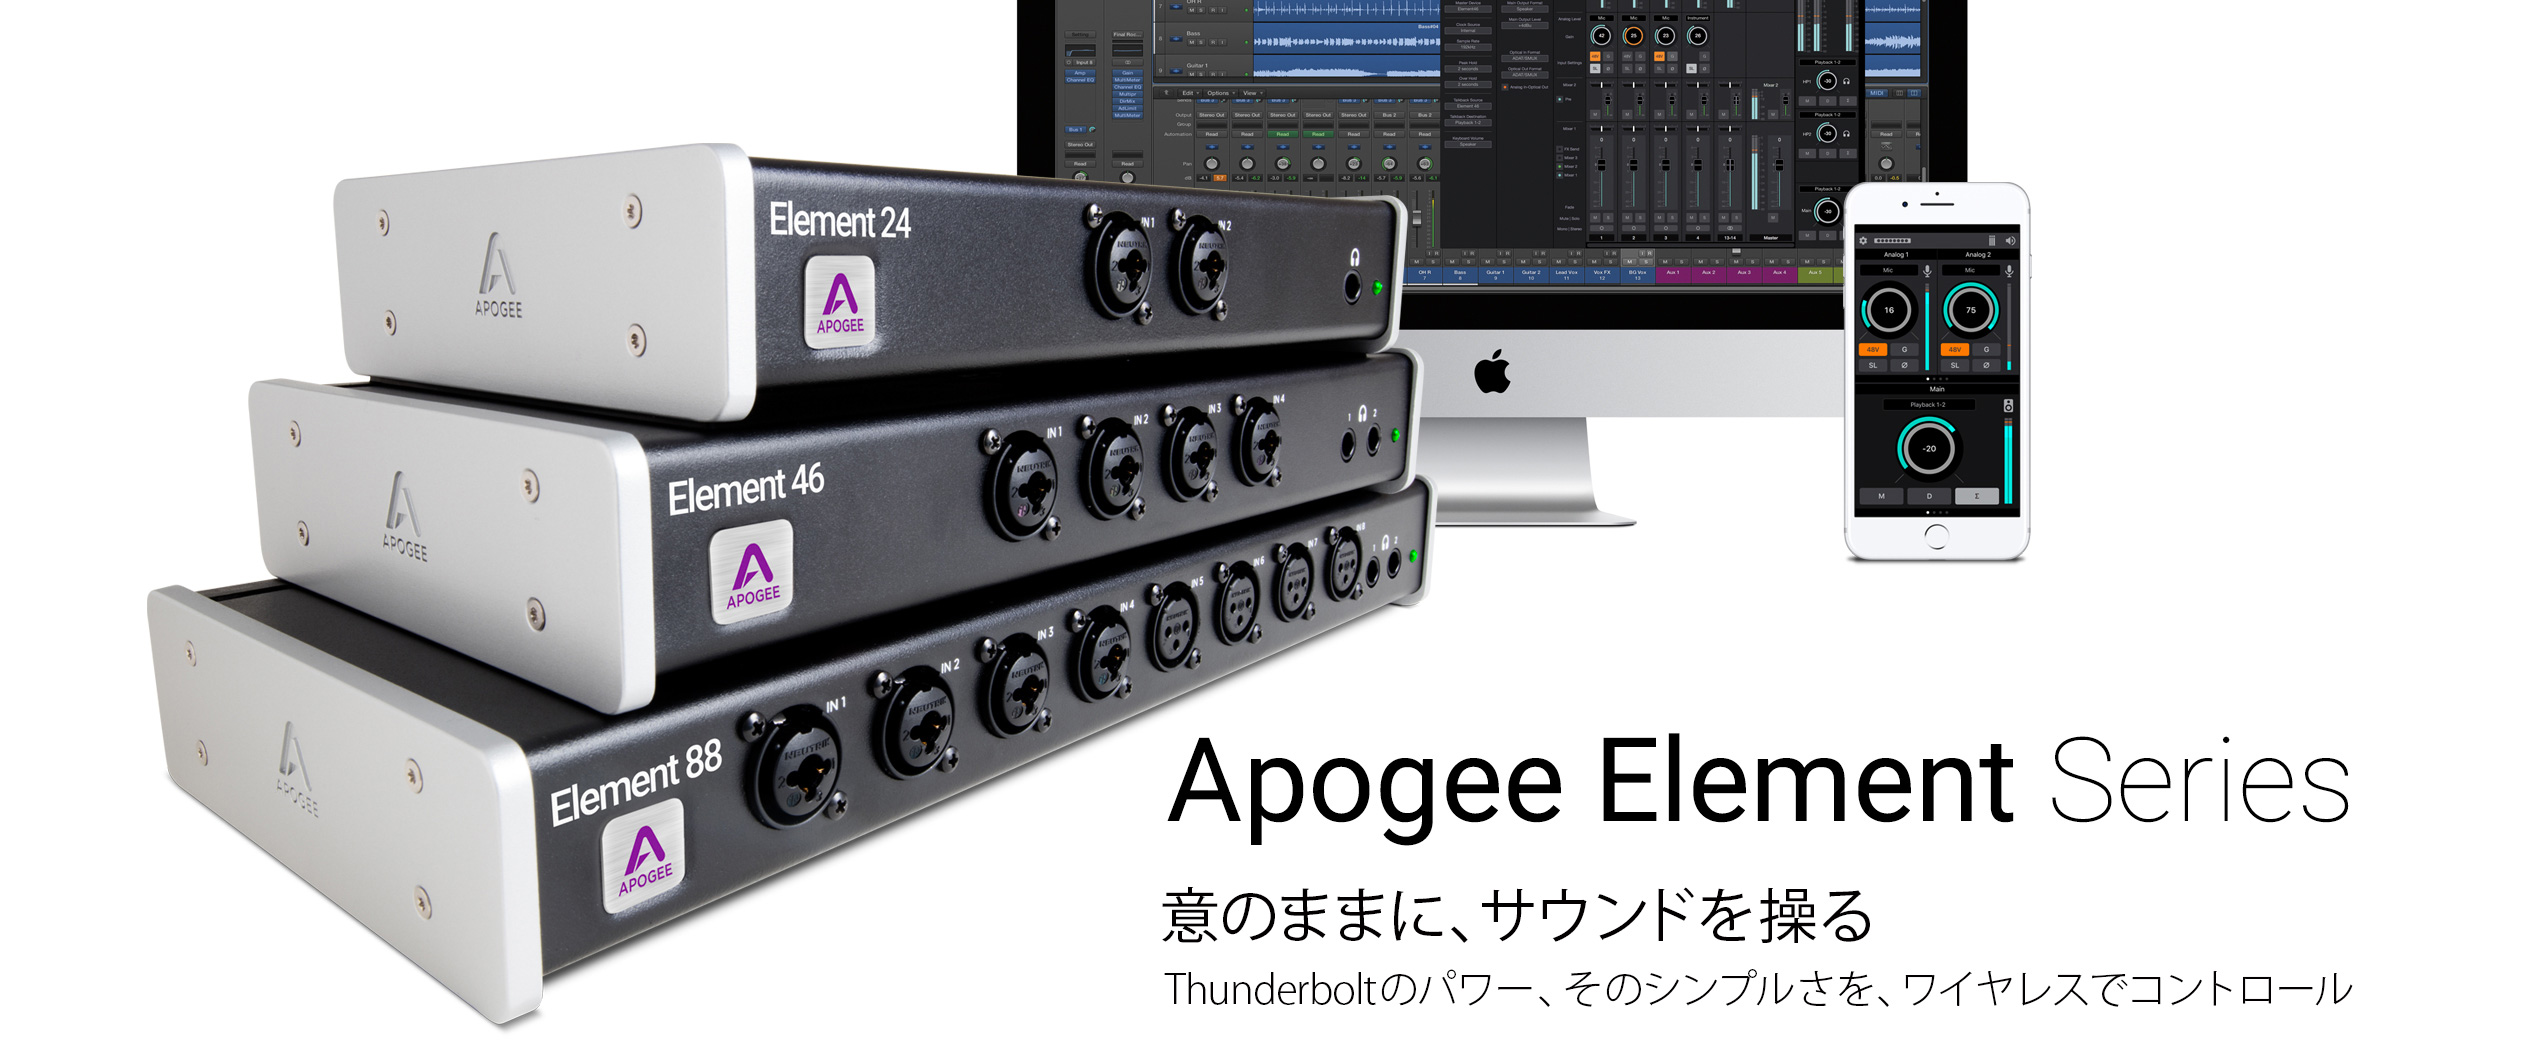 20170115_apogee_elements-overview_bnr_l